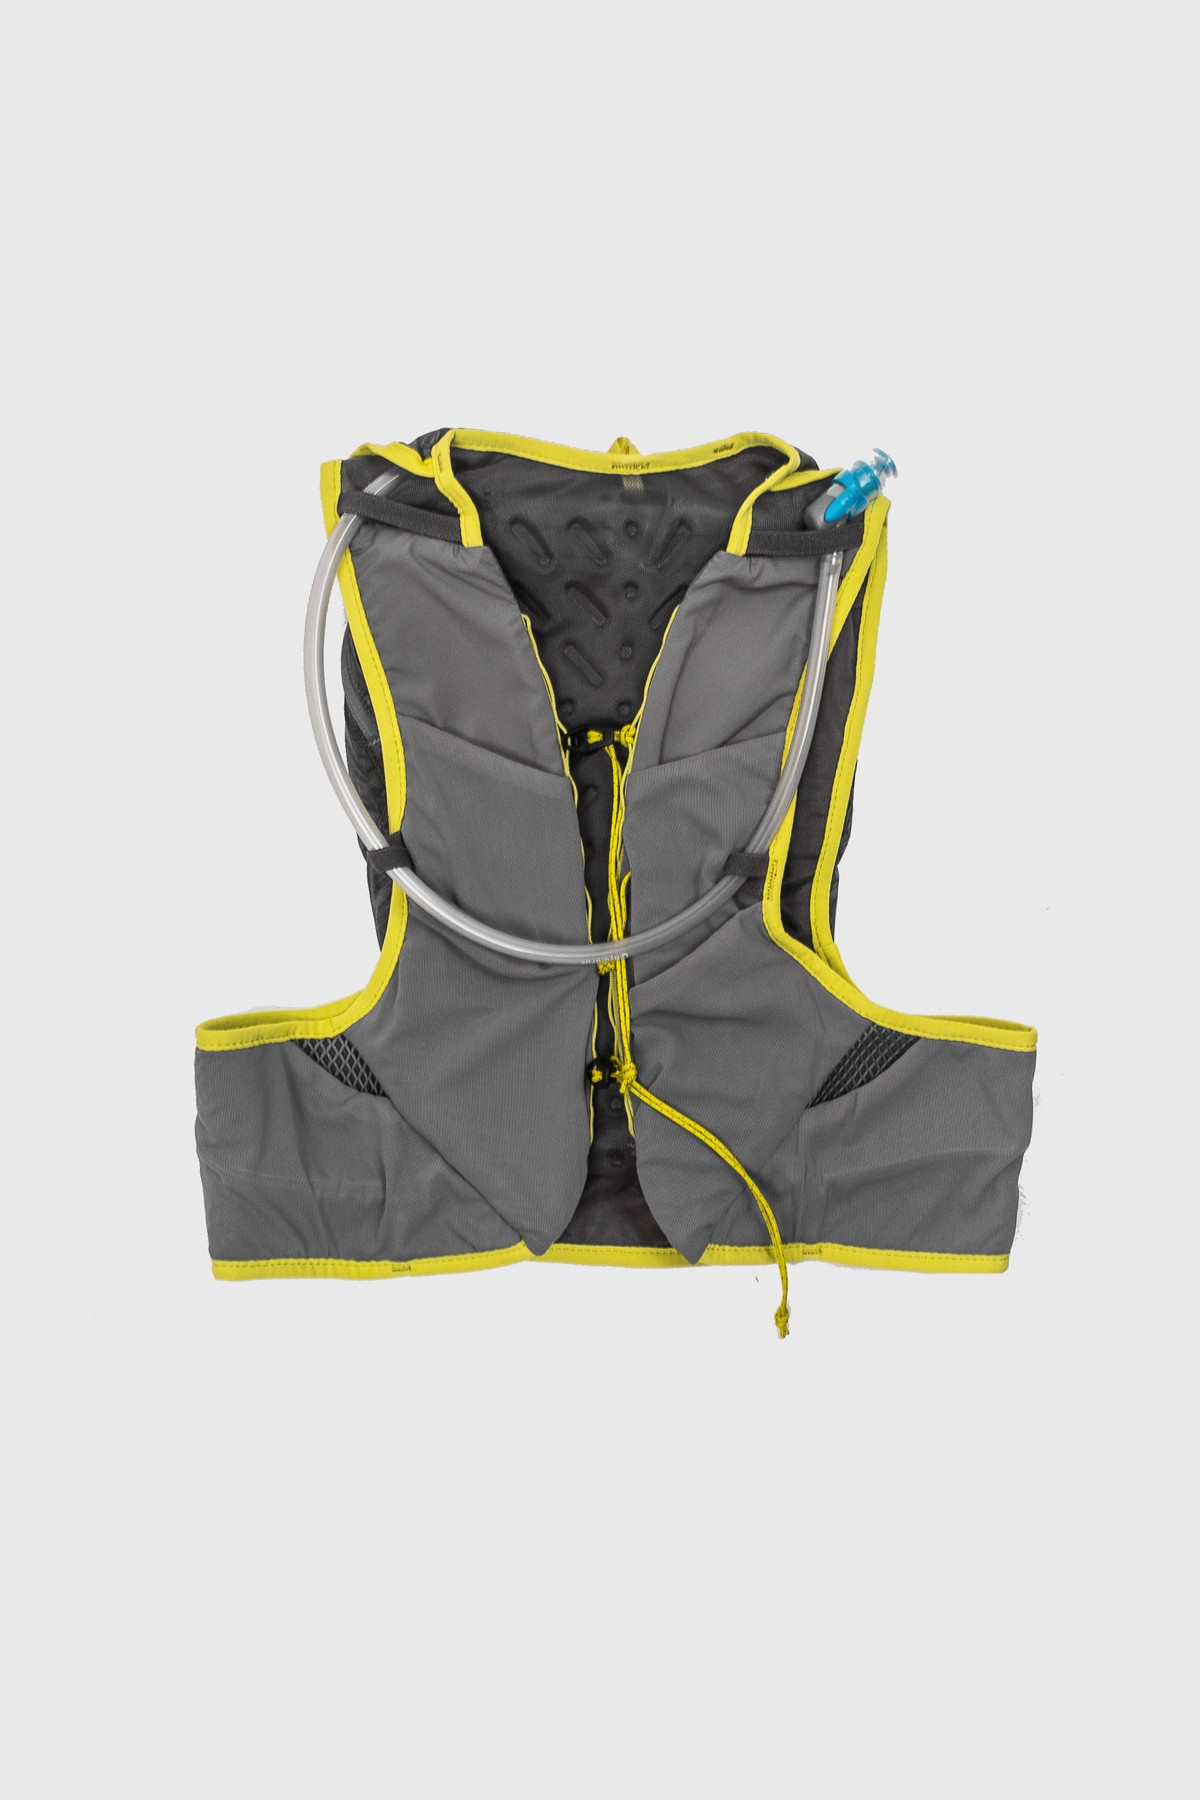 patagonia - Slope runner Pack 8L - cave grey